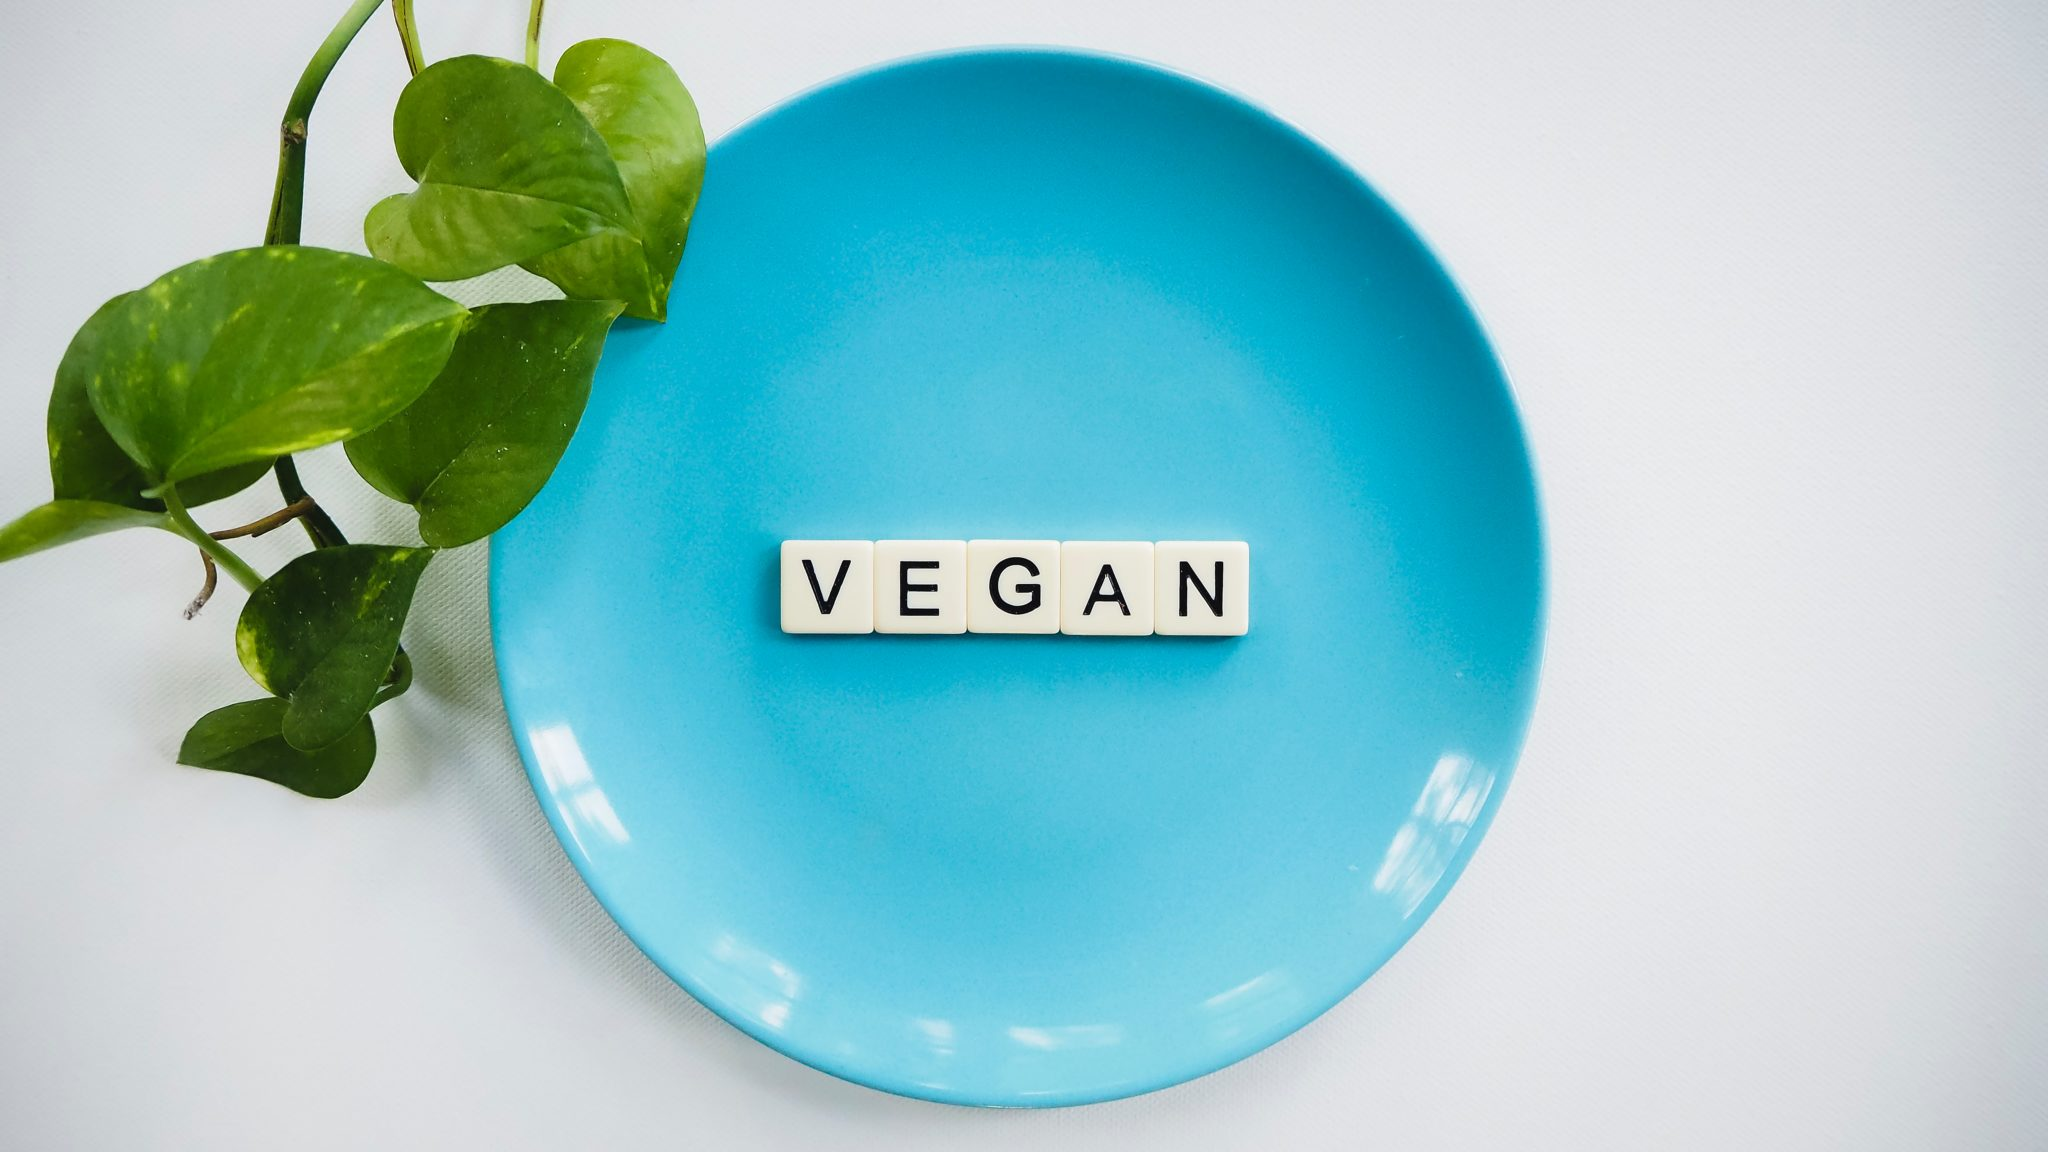 """image of a blue plate with tiles on top that read """"vegan"""" against a white background"""